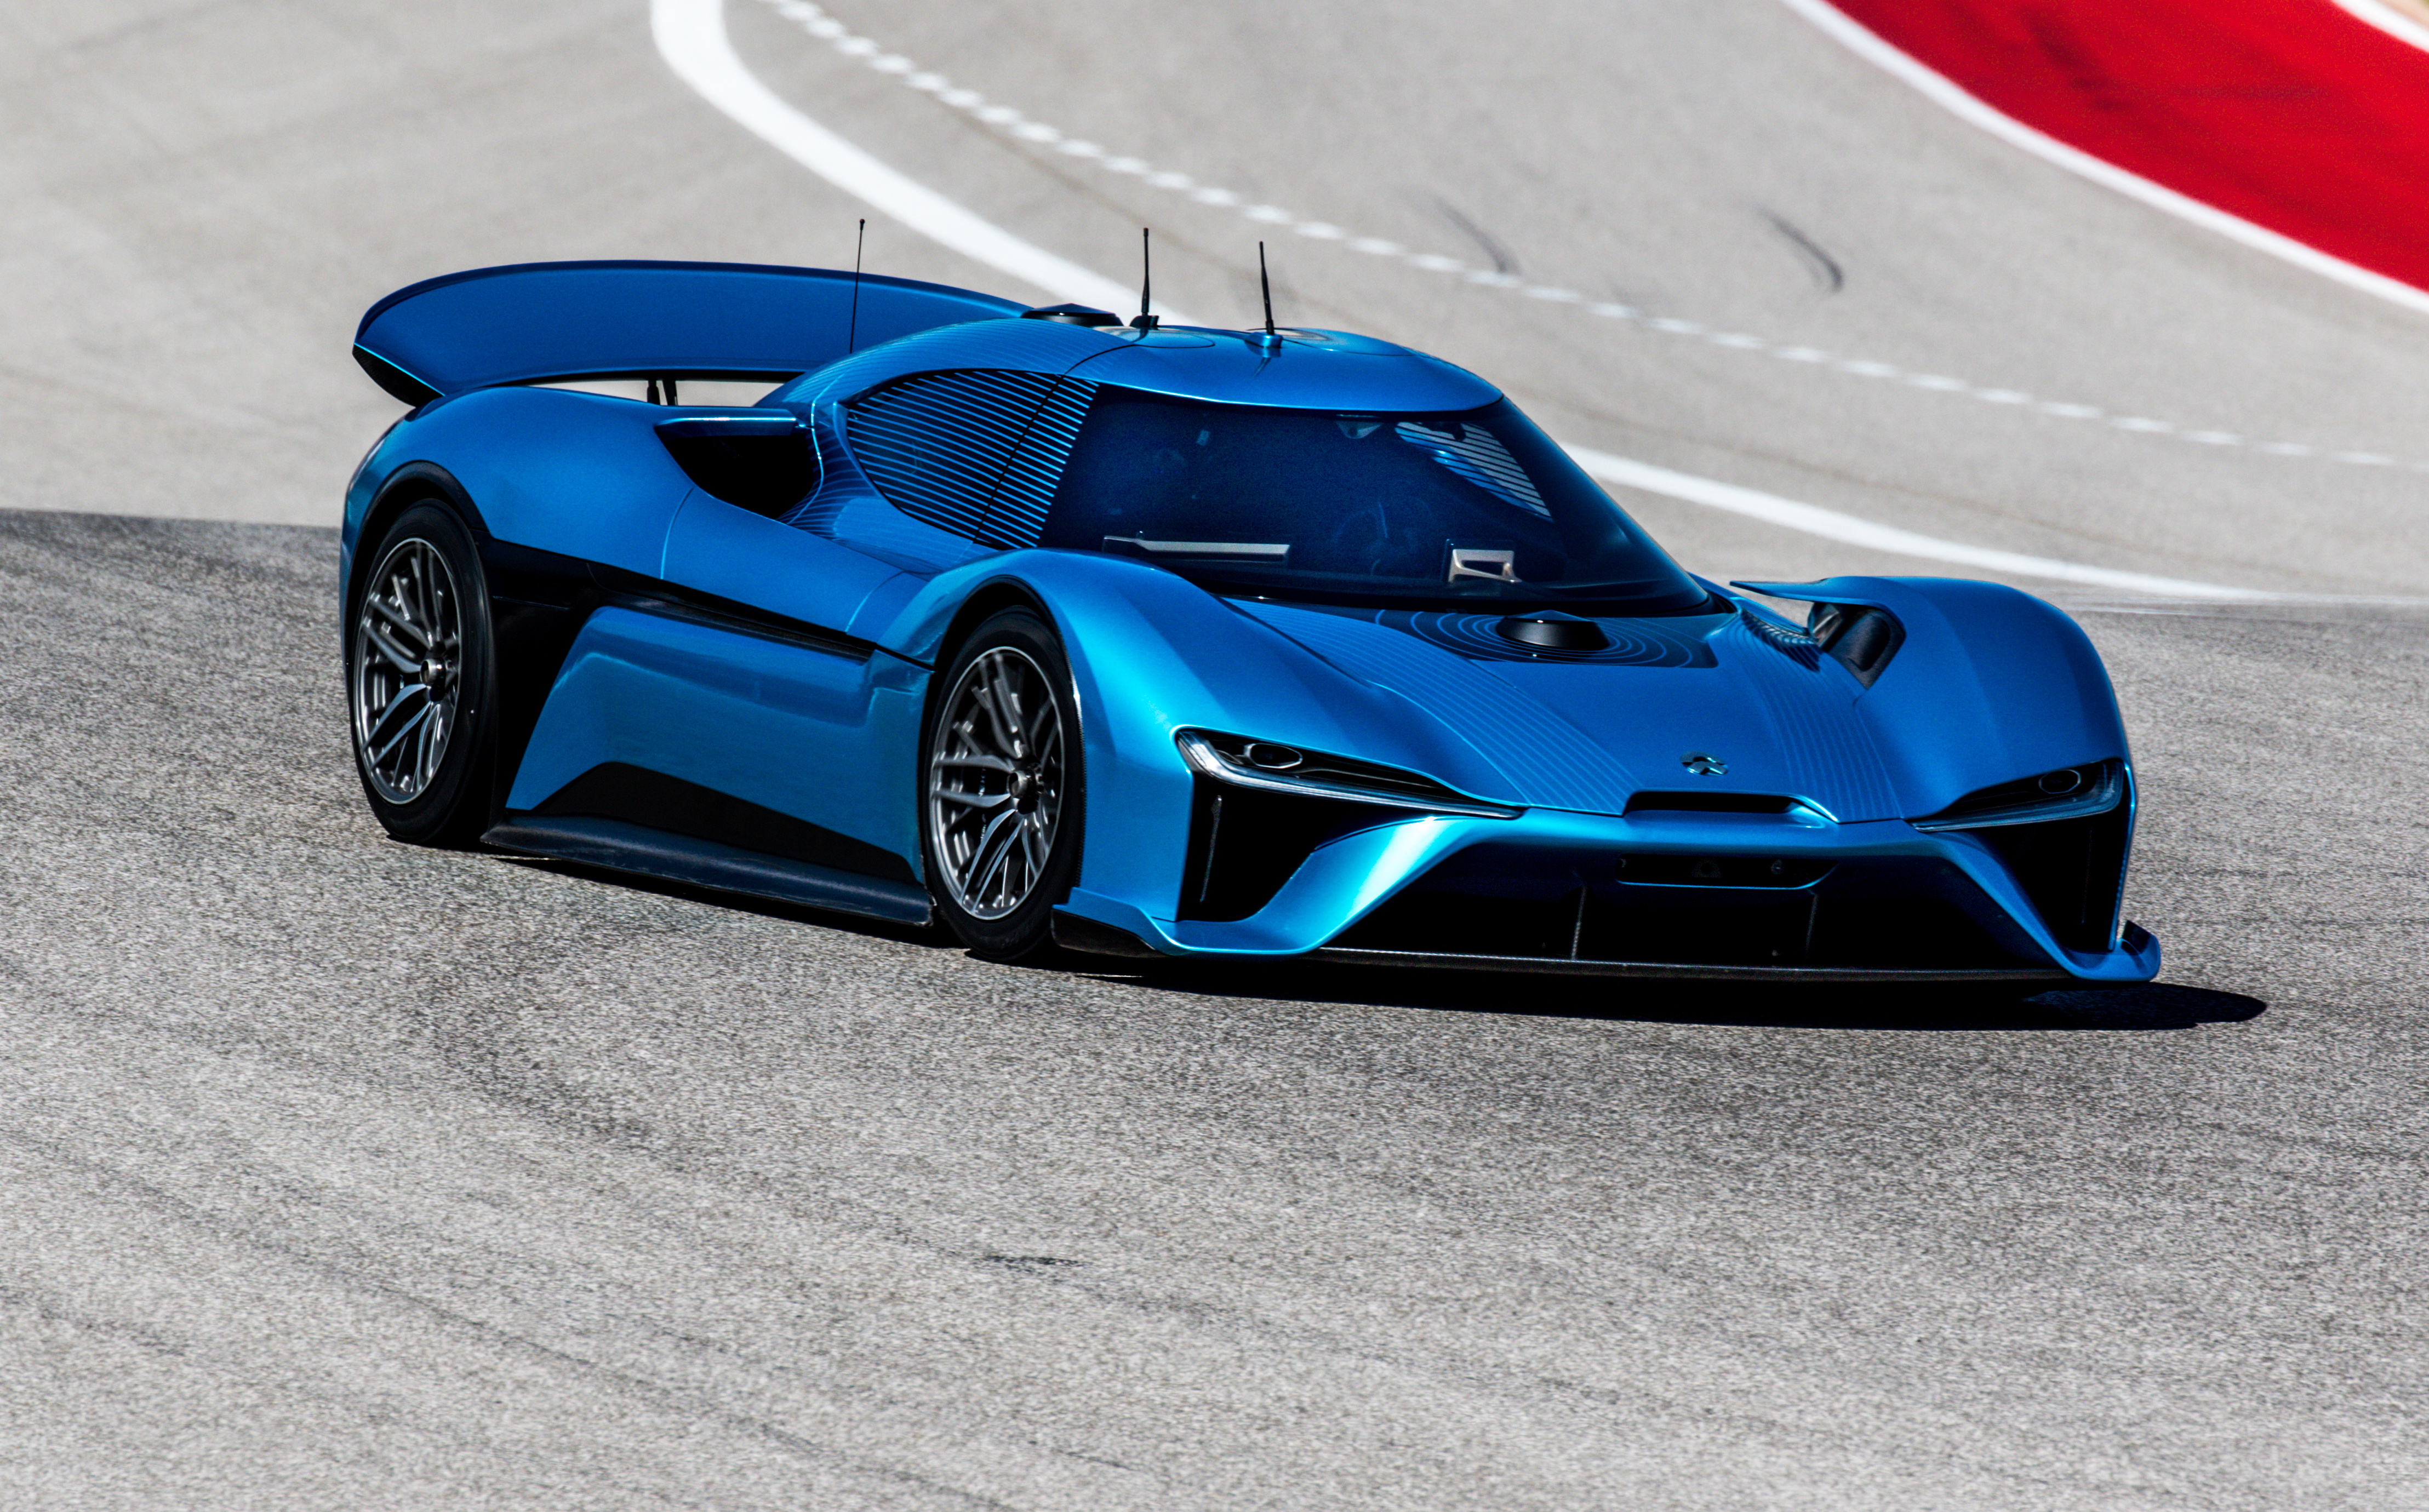 The NIO EP9 supercar set multiple lap records at Circuit of The Americas including fastest driverless lap and fastest production car lap. (COTA)